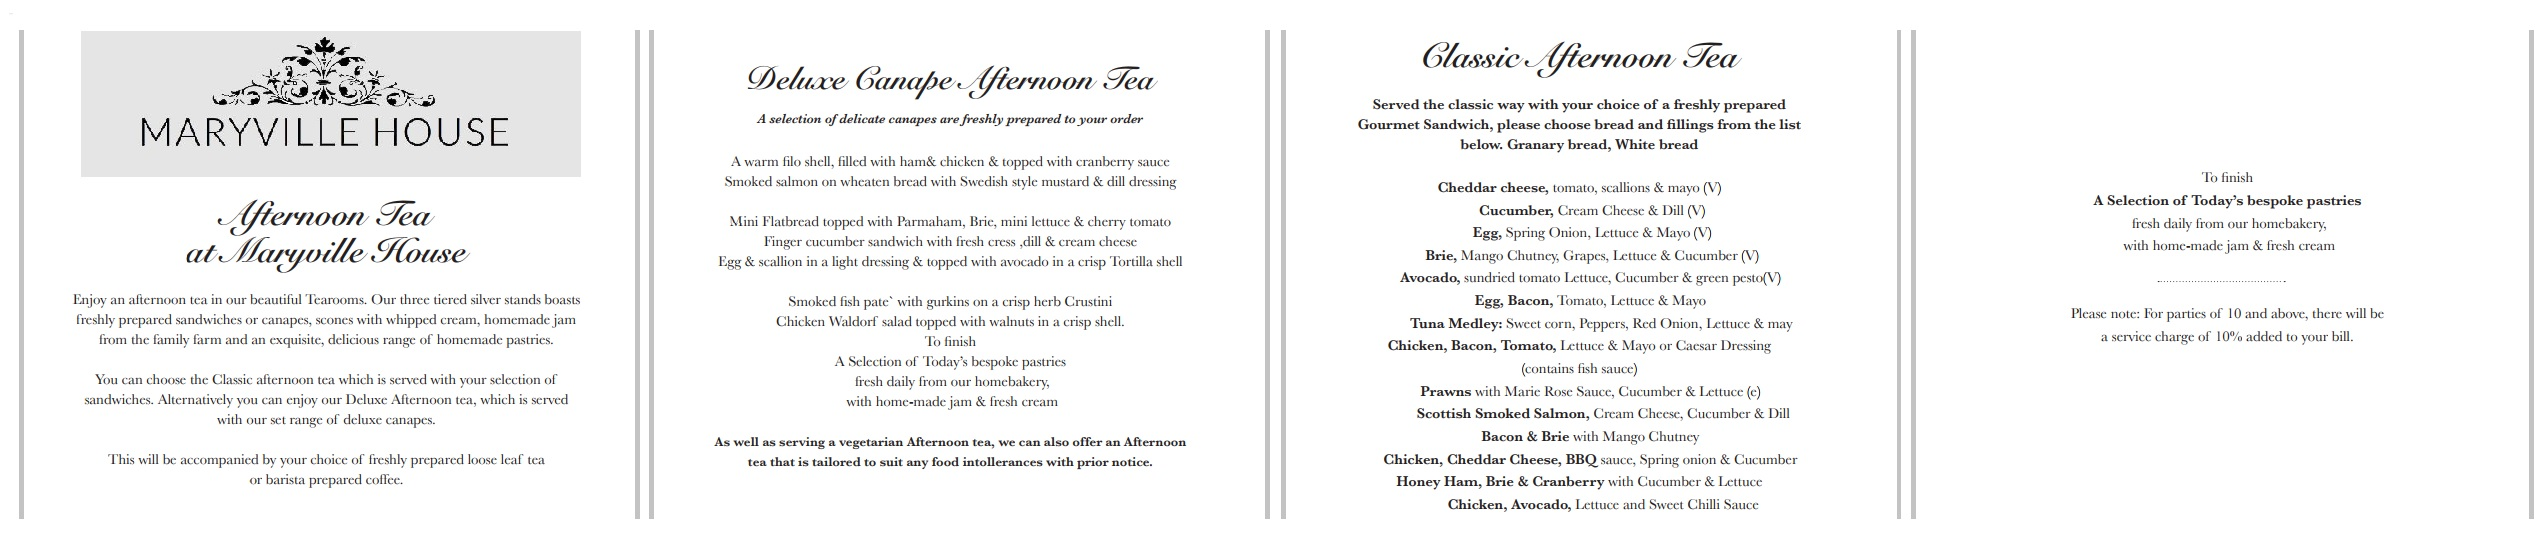 Afternoon Tea menu at the Maryville House Tearooms in Belfast